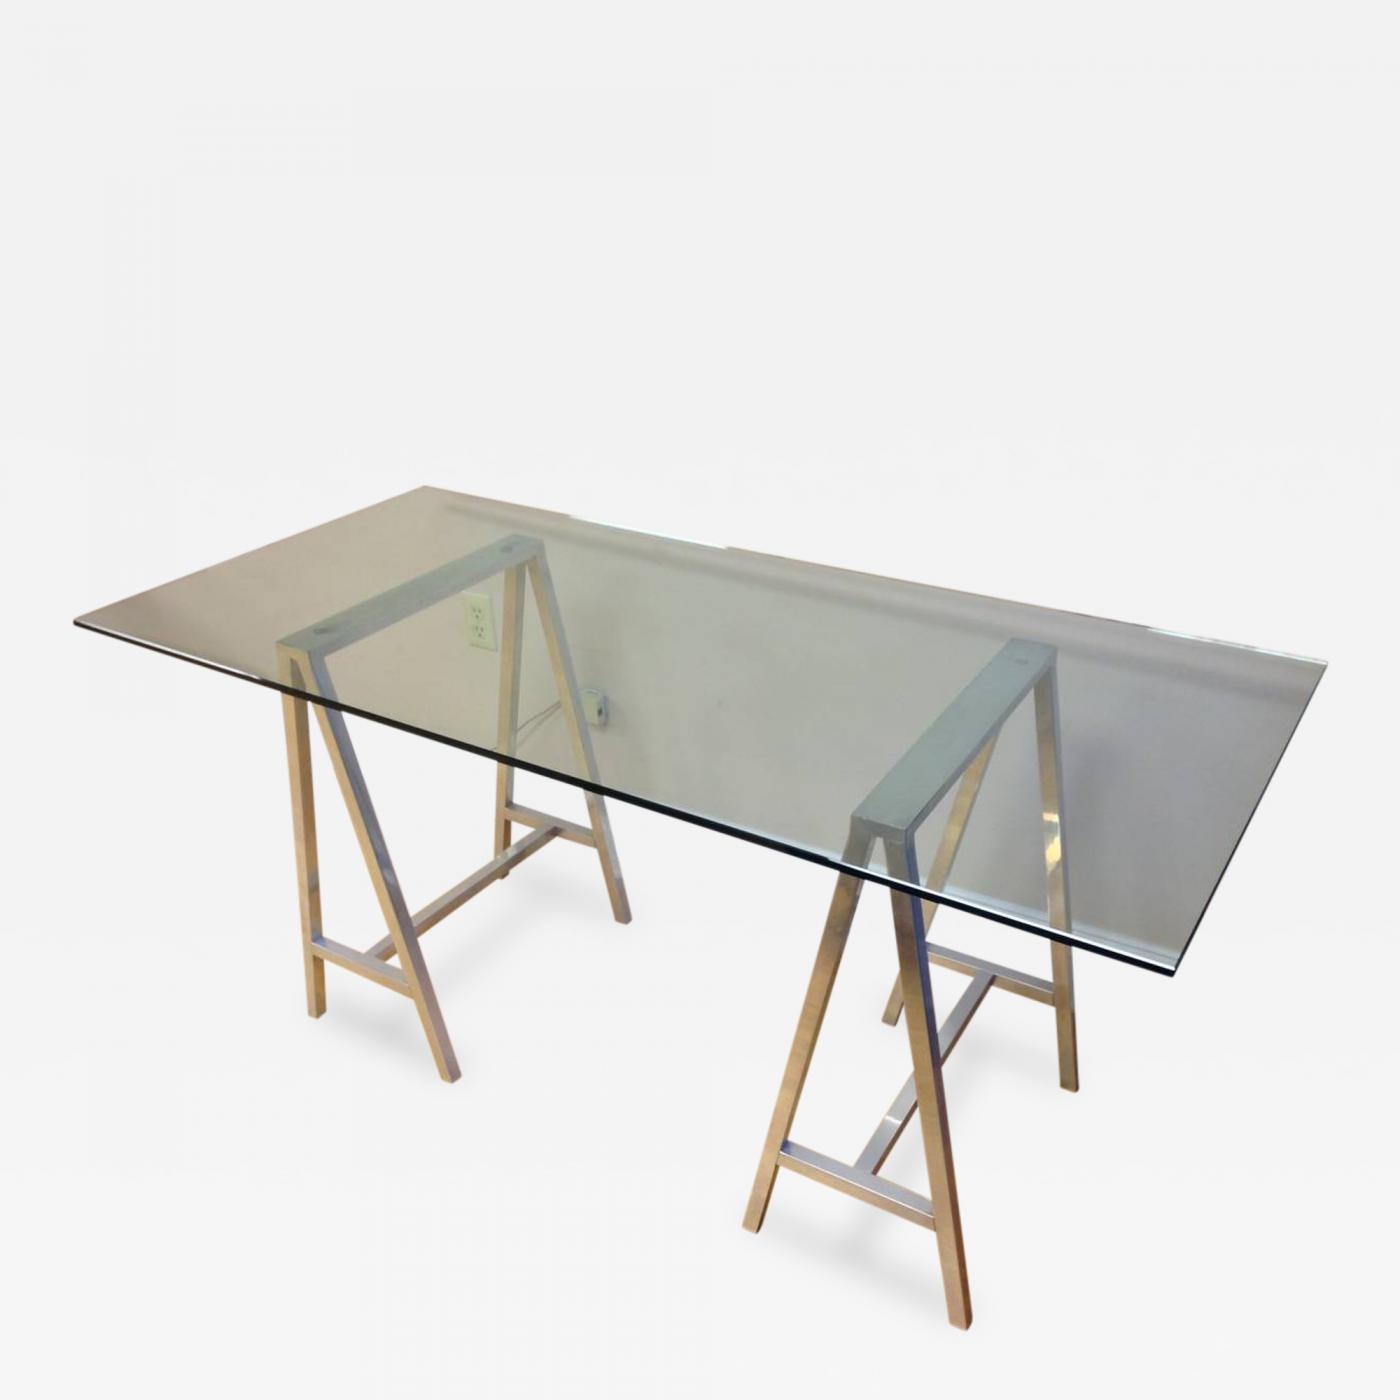 Glass Top Aluminum Saw Horse Leg Table or Desk